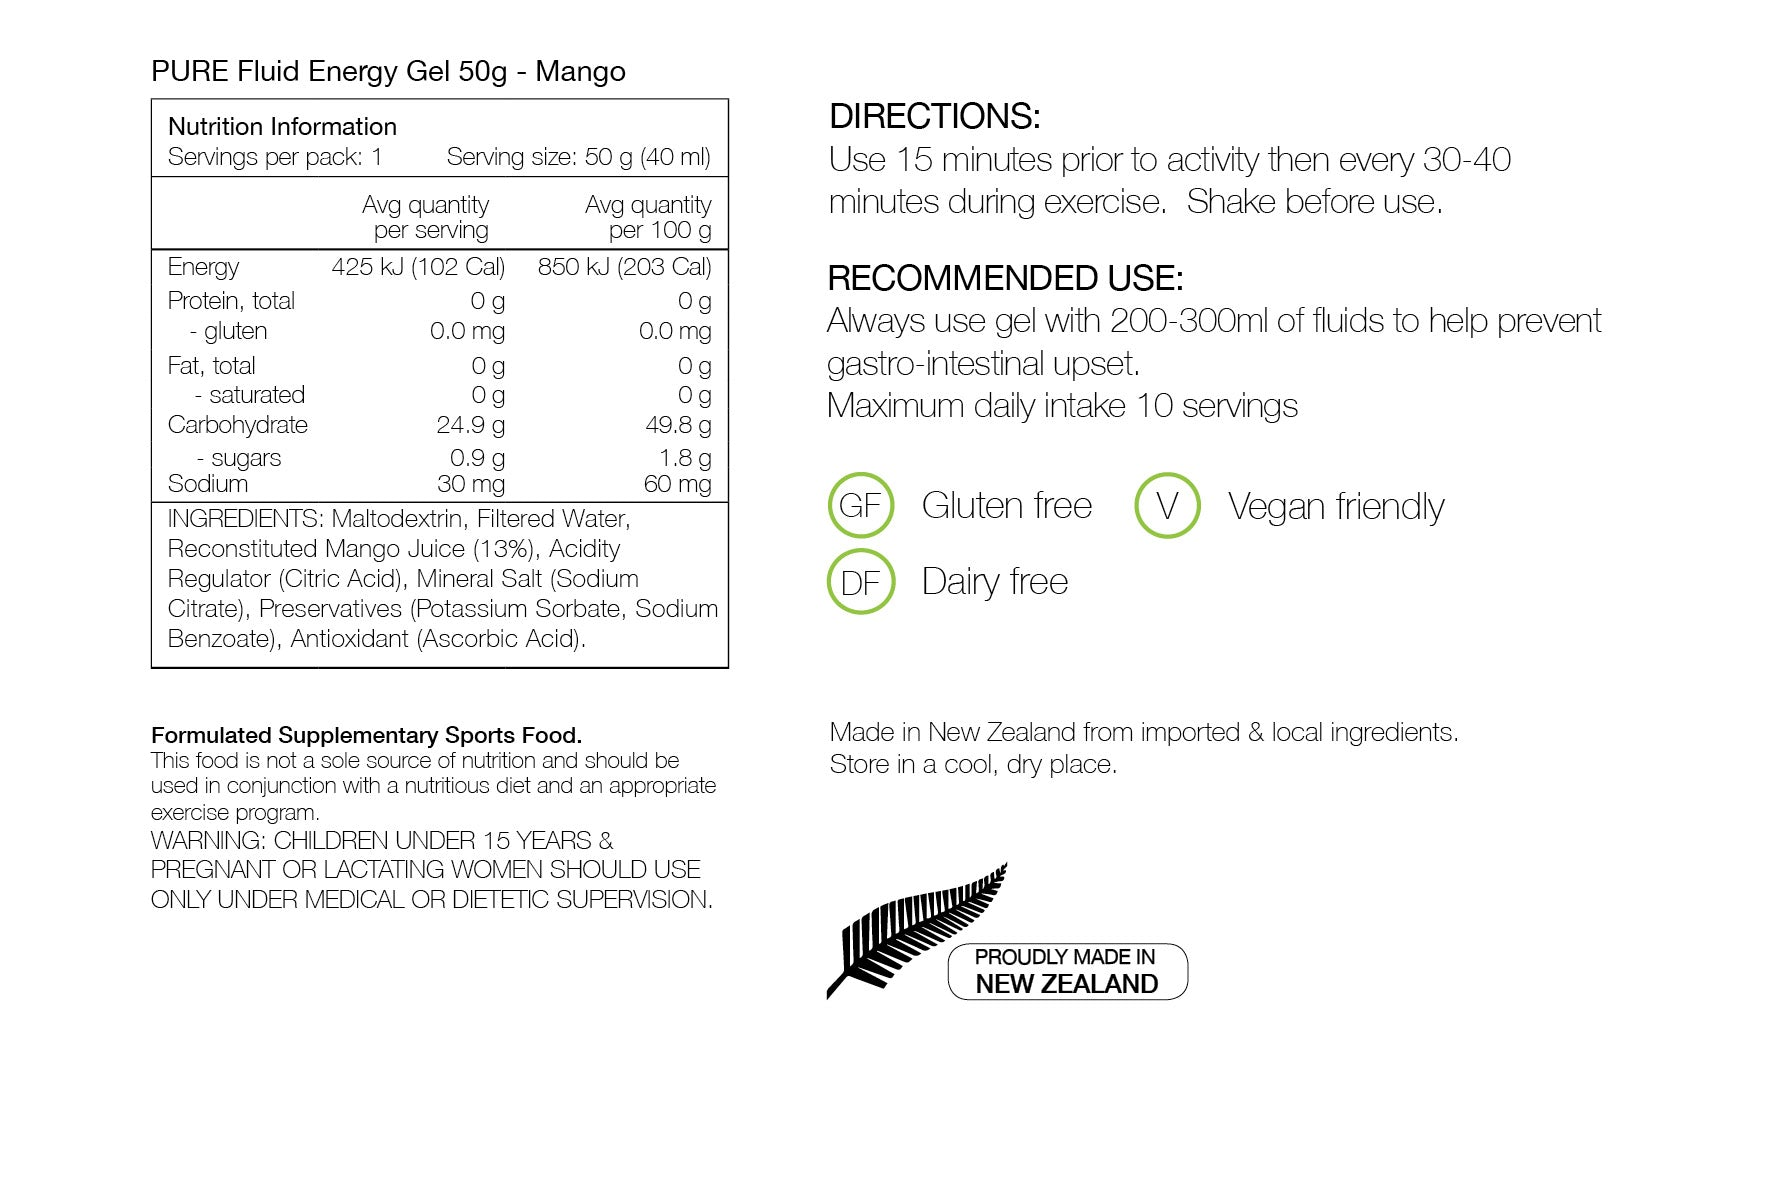 PURE NUTRITION | Fluid Energy Gels 50g - Mango Juice Nutrition Sheet